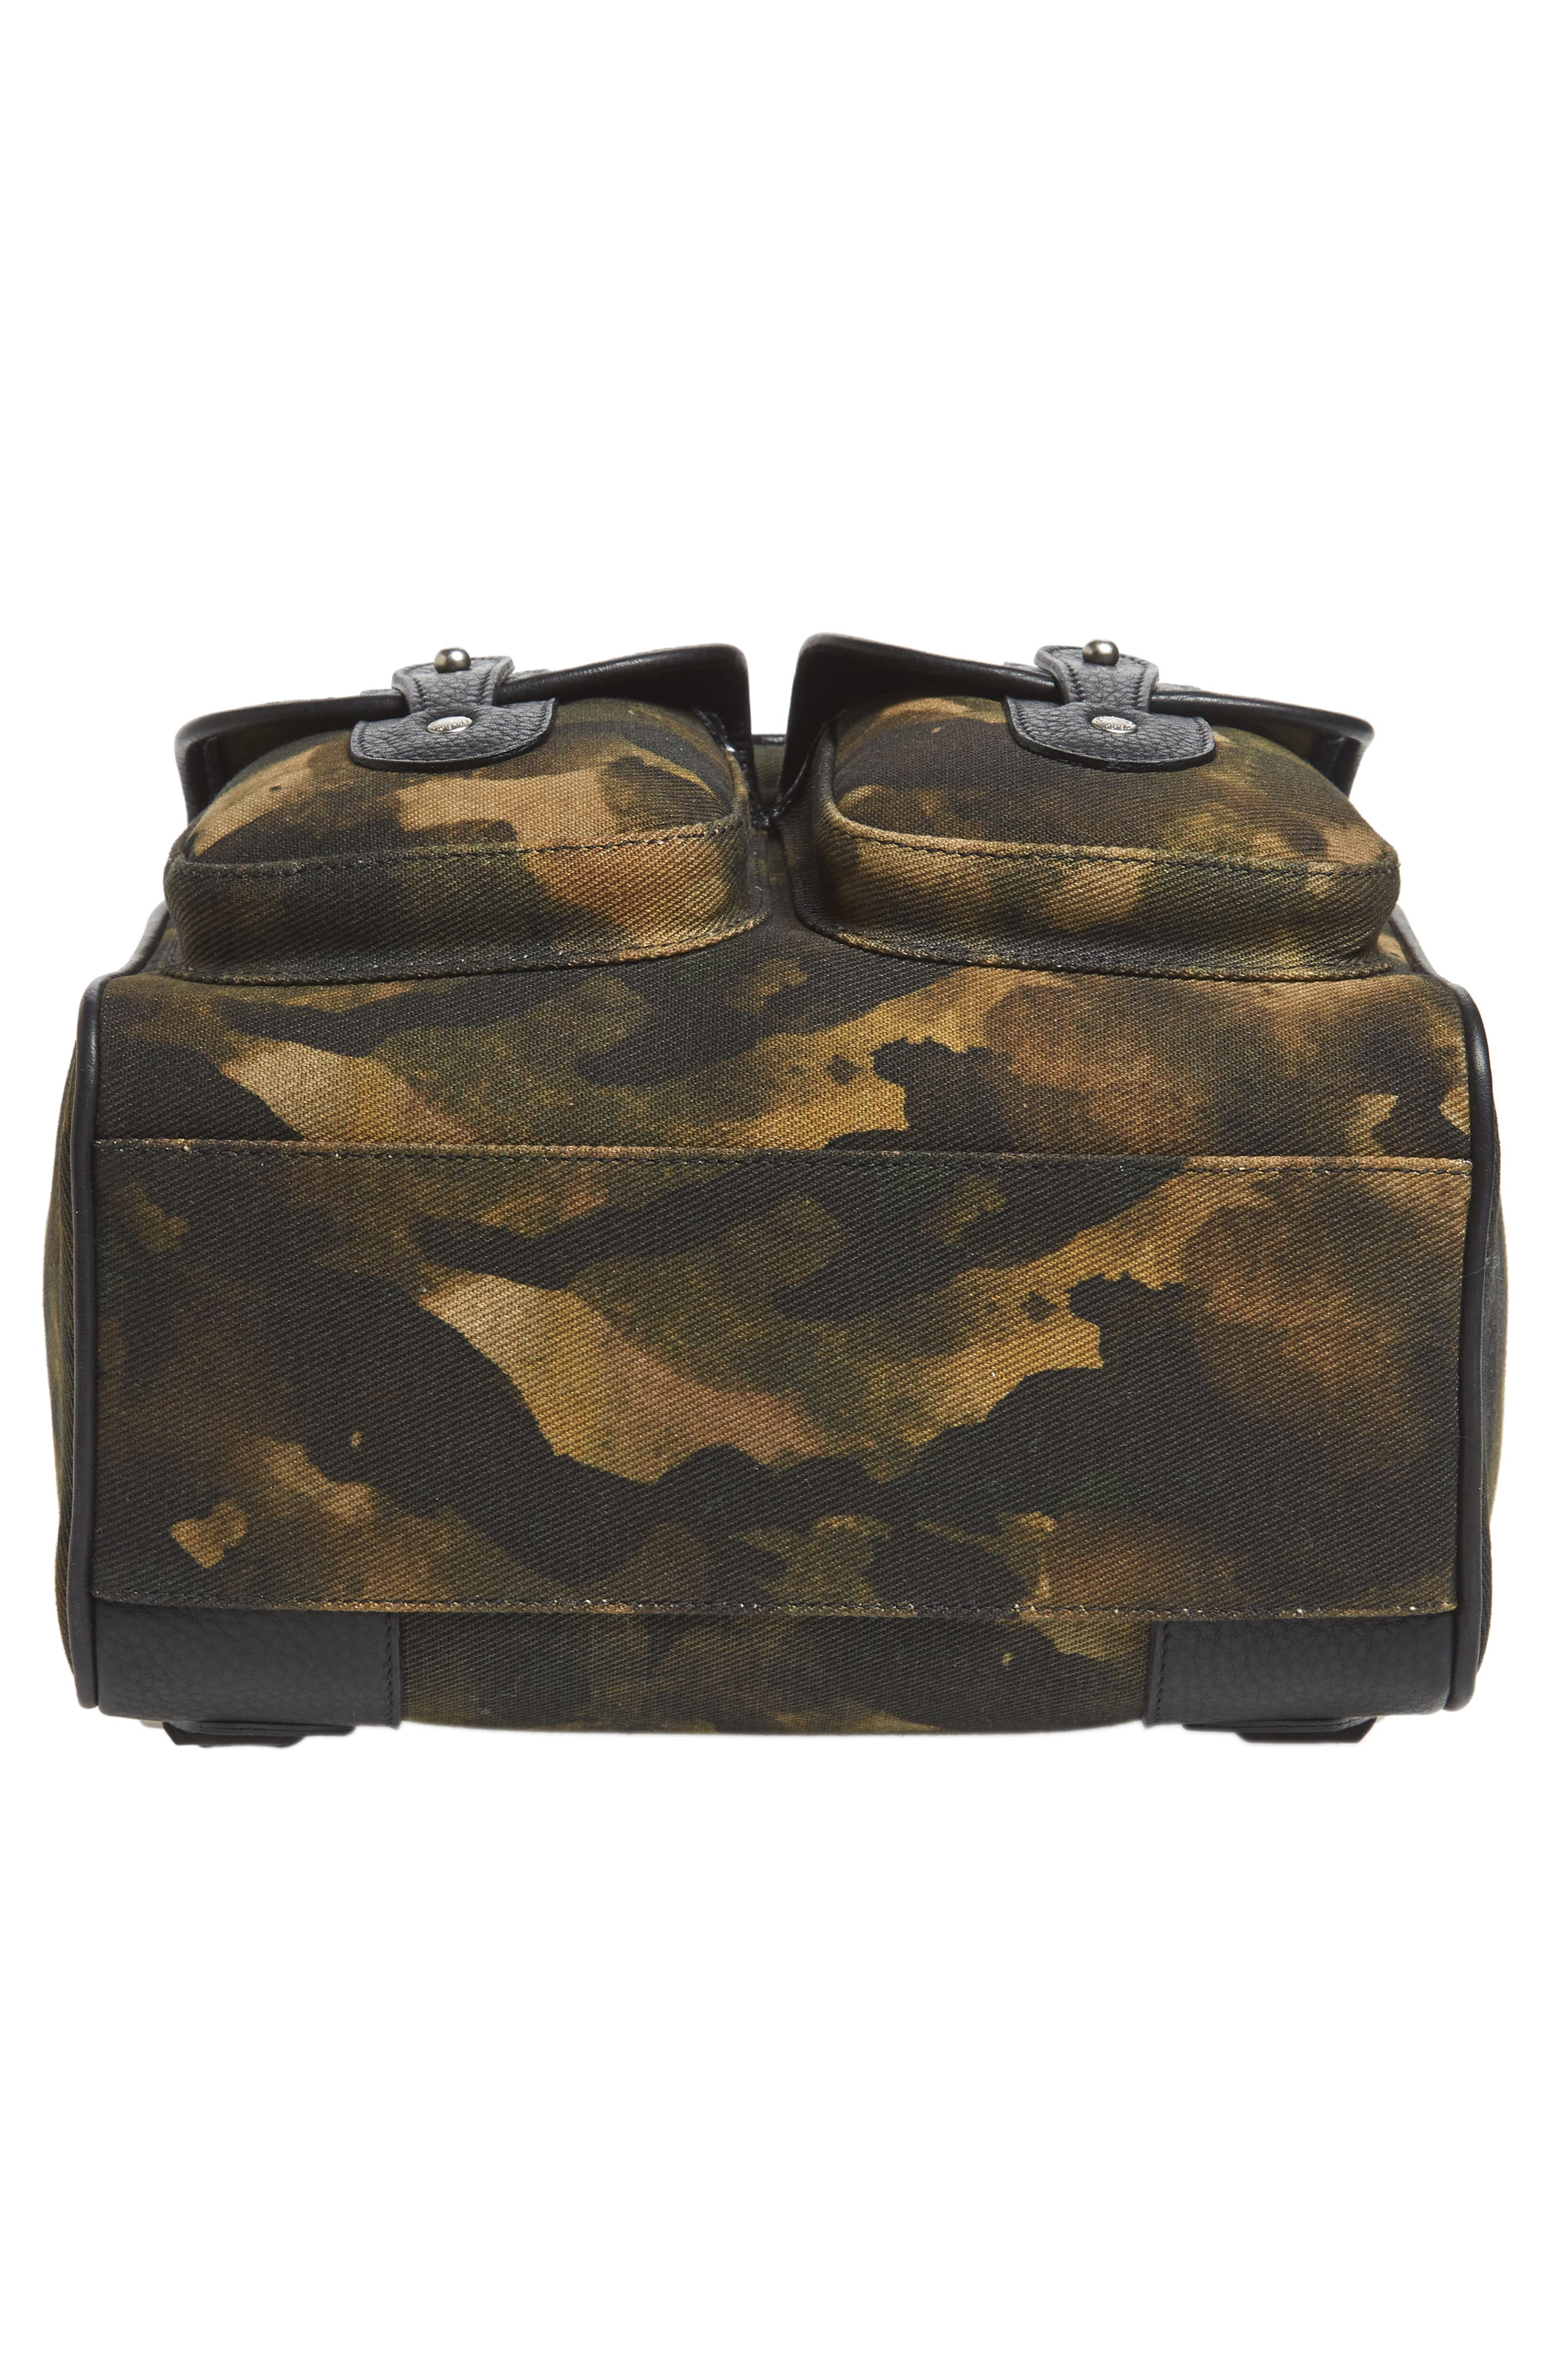 Blazer Canvas Backpack,                             Alternate thumbnail 6, color,                             CAMO SOLID